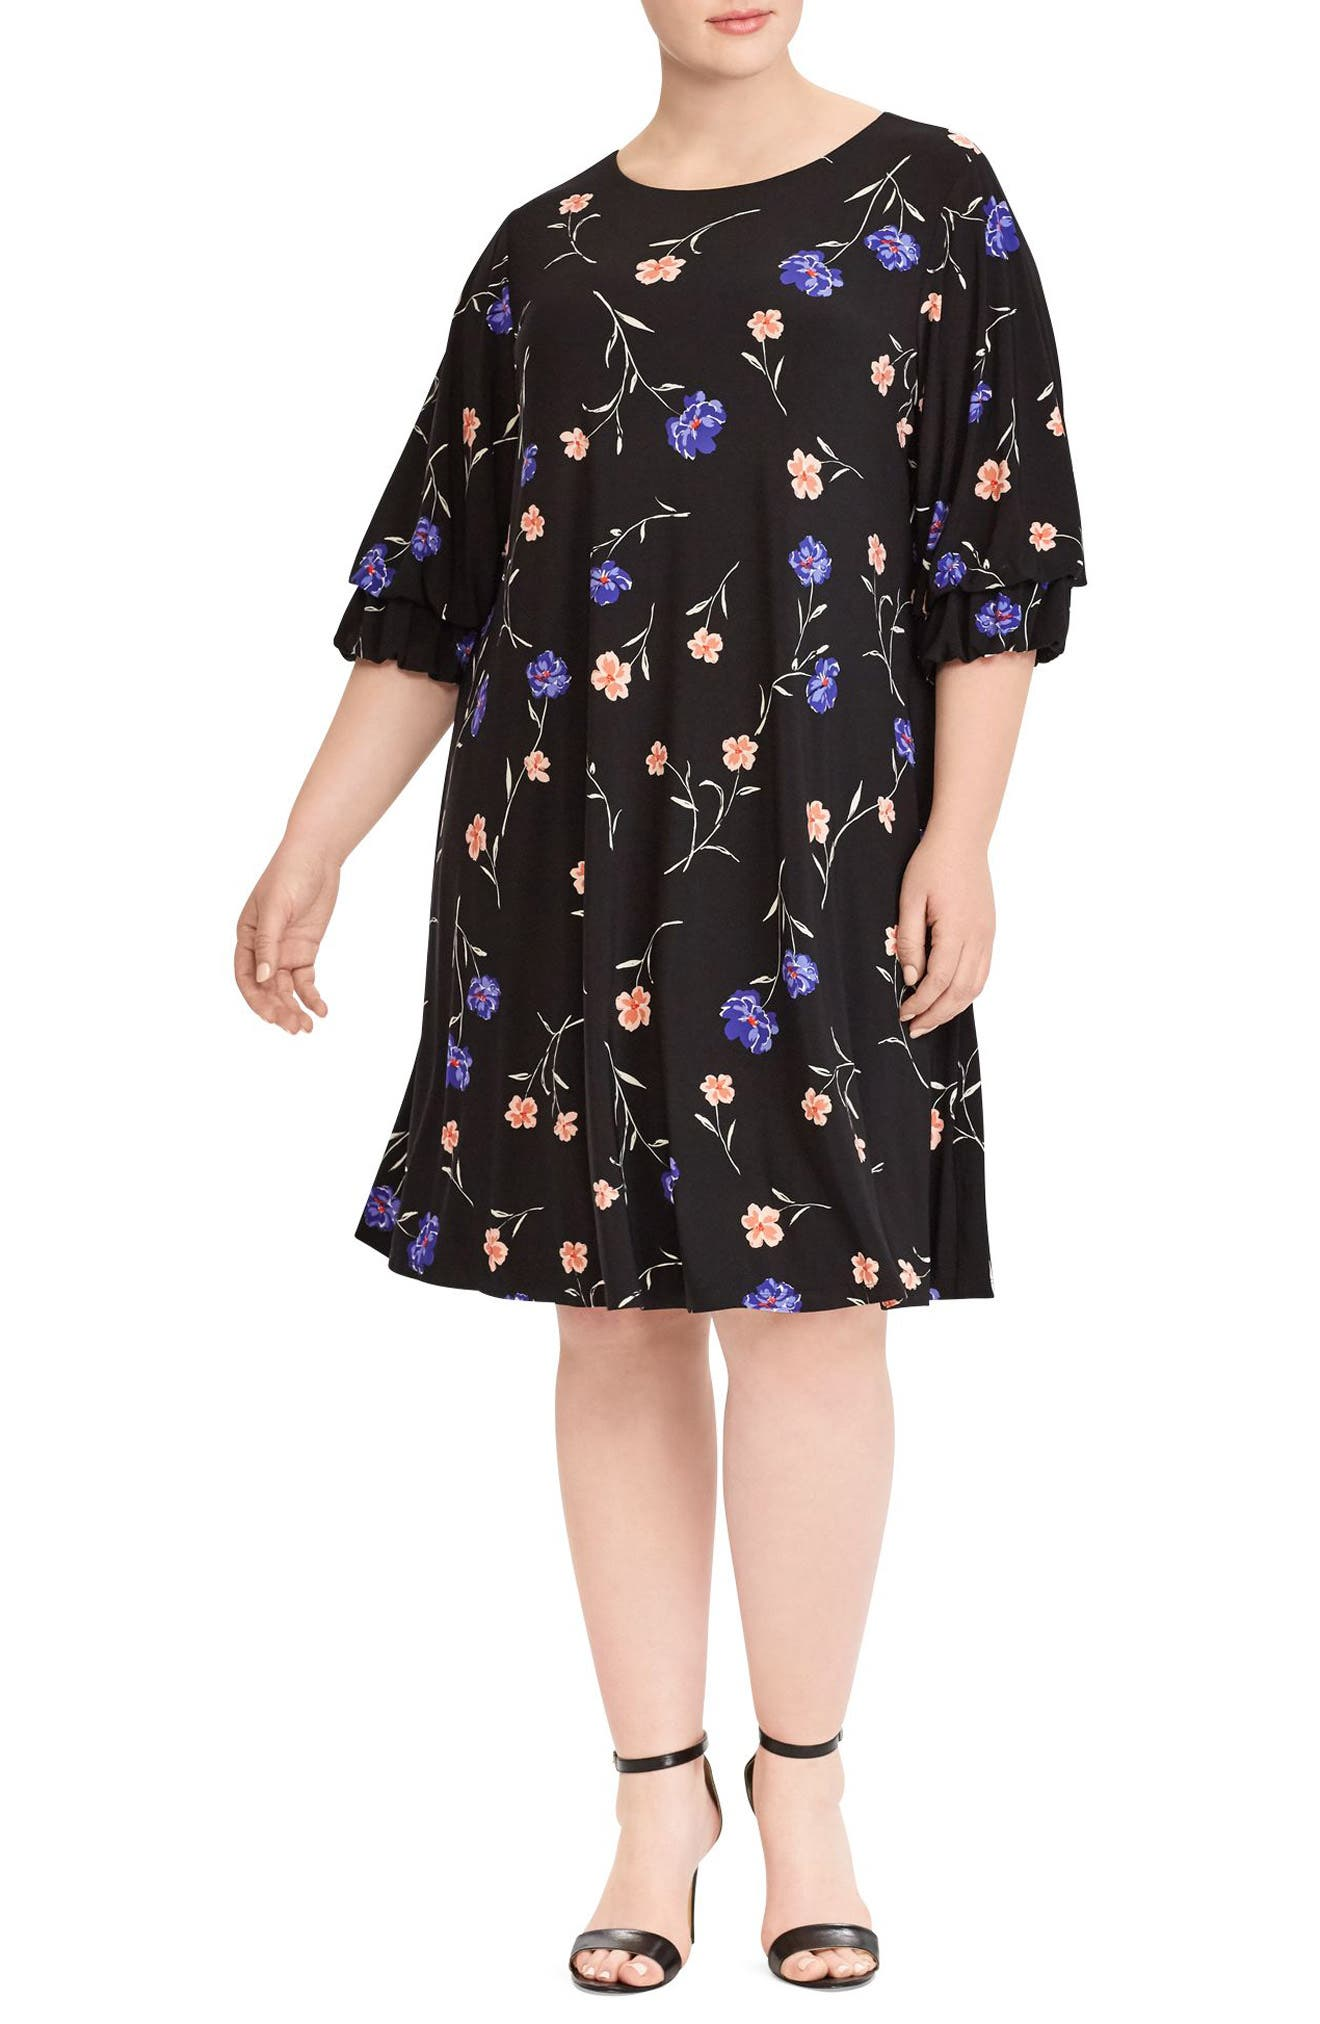 Ruffle Sleeve Floral Print Dress,                         Main,                         color, Black-Blue-Multi